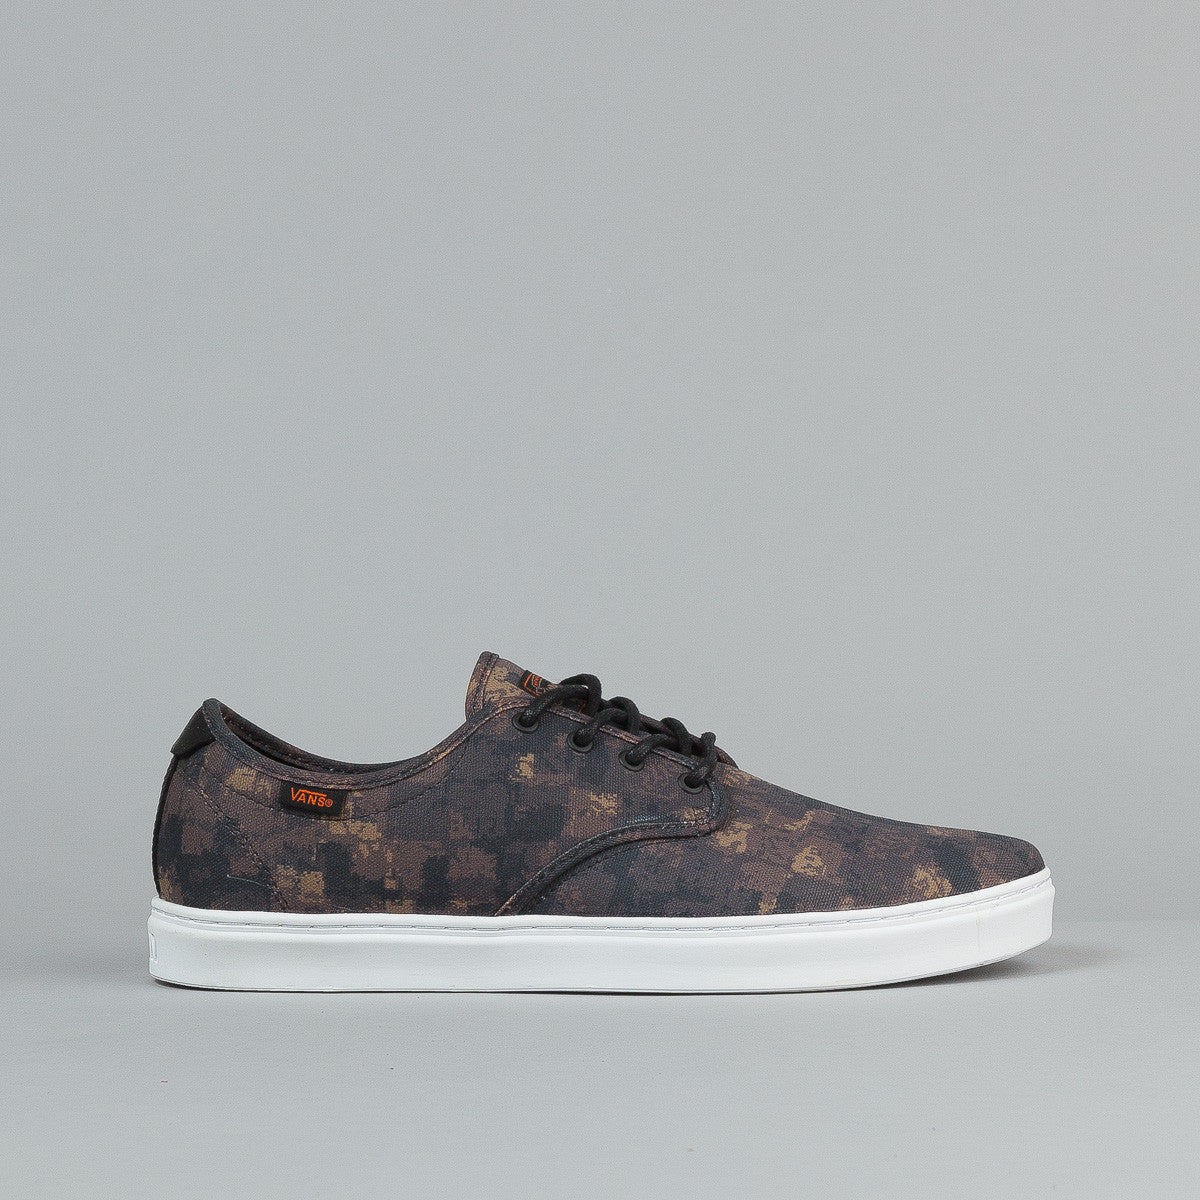 Vans Ludlow Hyperstealth Brown / Black